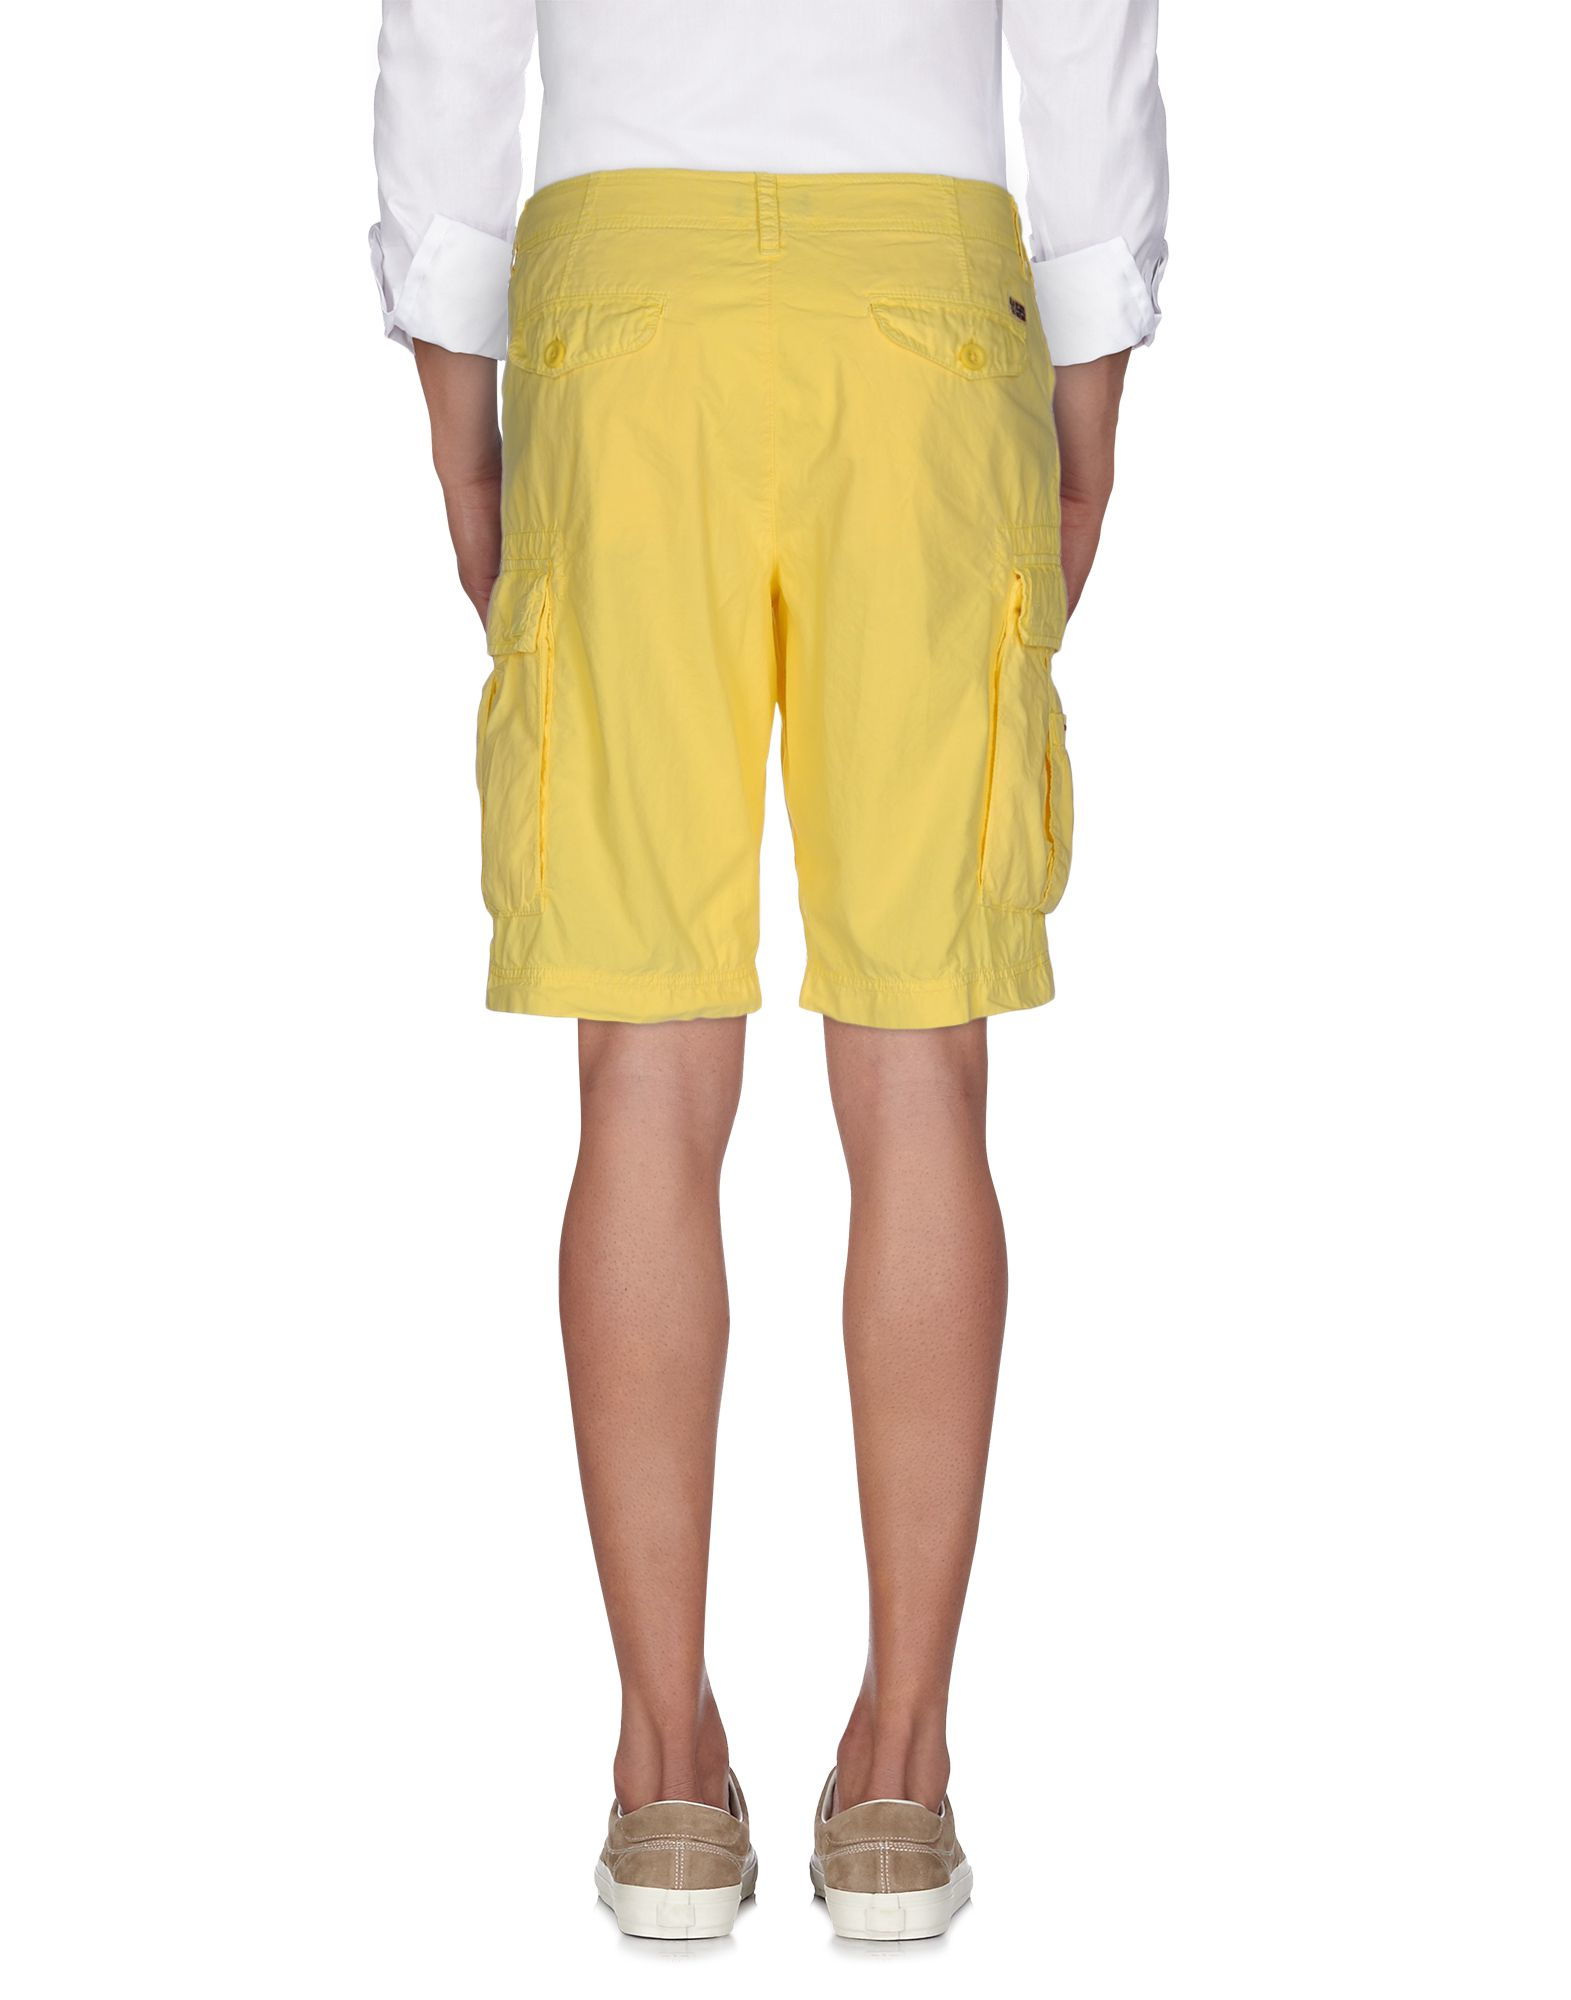 Free shipping BOTH ways on womens bermuda shorts clothing, from our vast selection of styles. Fast delivery, and 24/7/ real-person service with a smile. Click or call